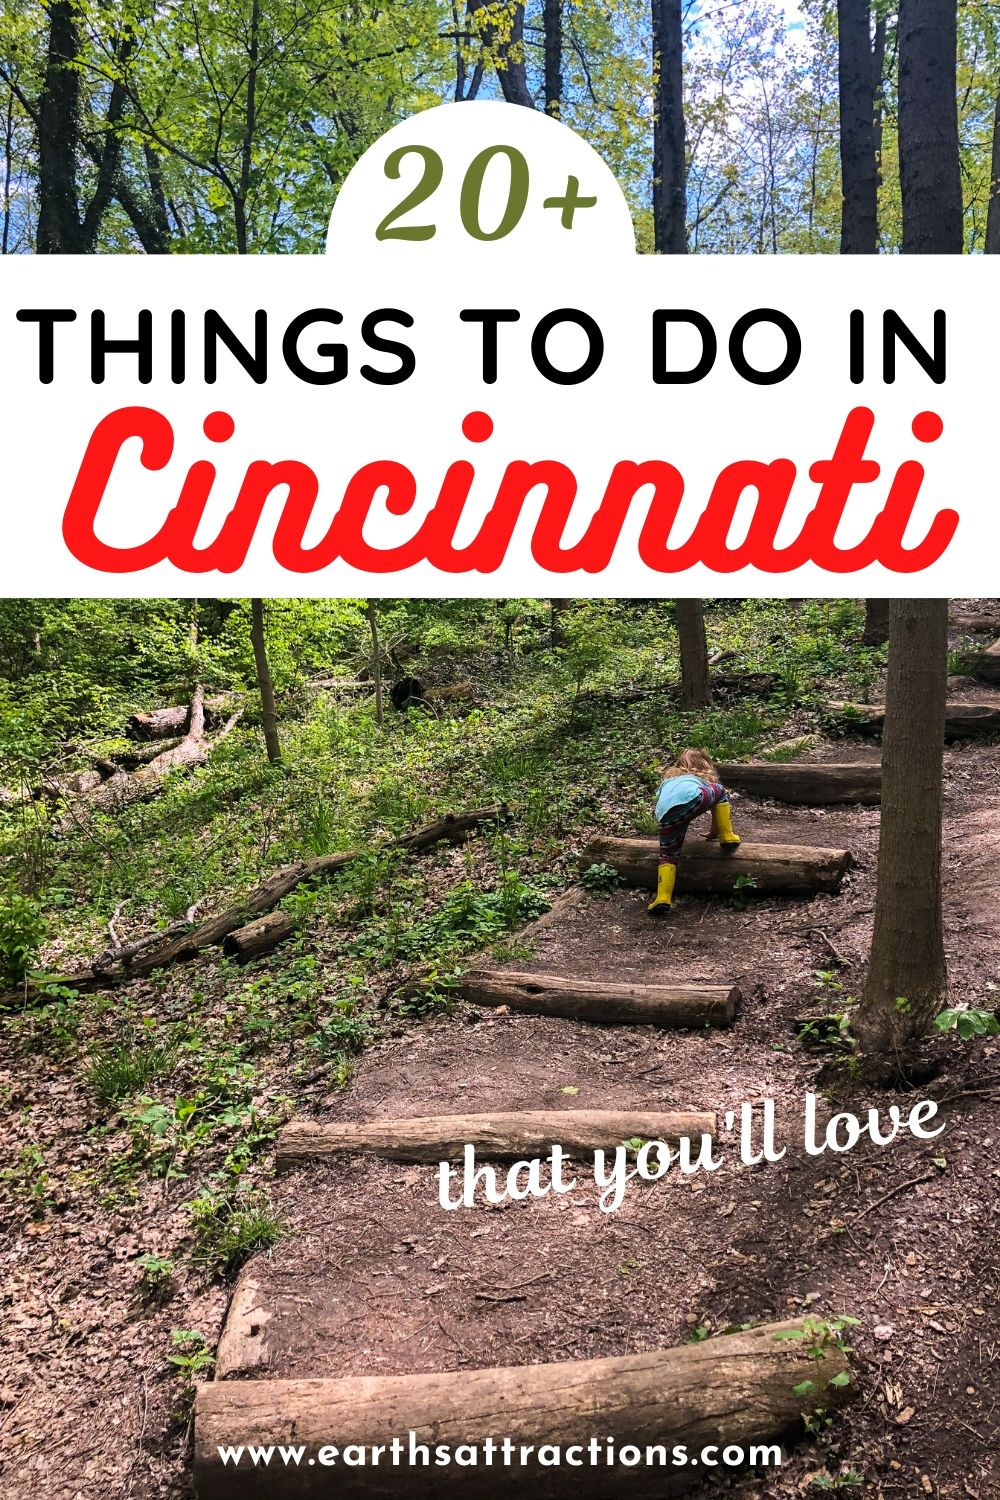 The best things to do in Cincinnati, Ohio, USA. This local's guide to Cincinnati shows you what to do in Cincinnati: famous Cincinnati attractions, offbeat Cincinnati activities, tips, restaurants, hotels, and more. Read this article now and create your Cincinnati bucket list! #cincinnati #ohio #cincinnatiguide #cincinnatithingstodo #usa #usatravel #ohiotravel #travelguides #earthsattractions #thingstodo #america